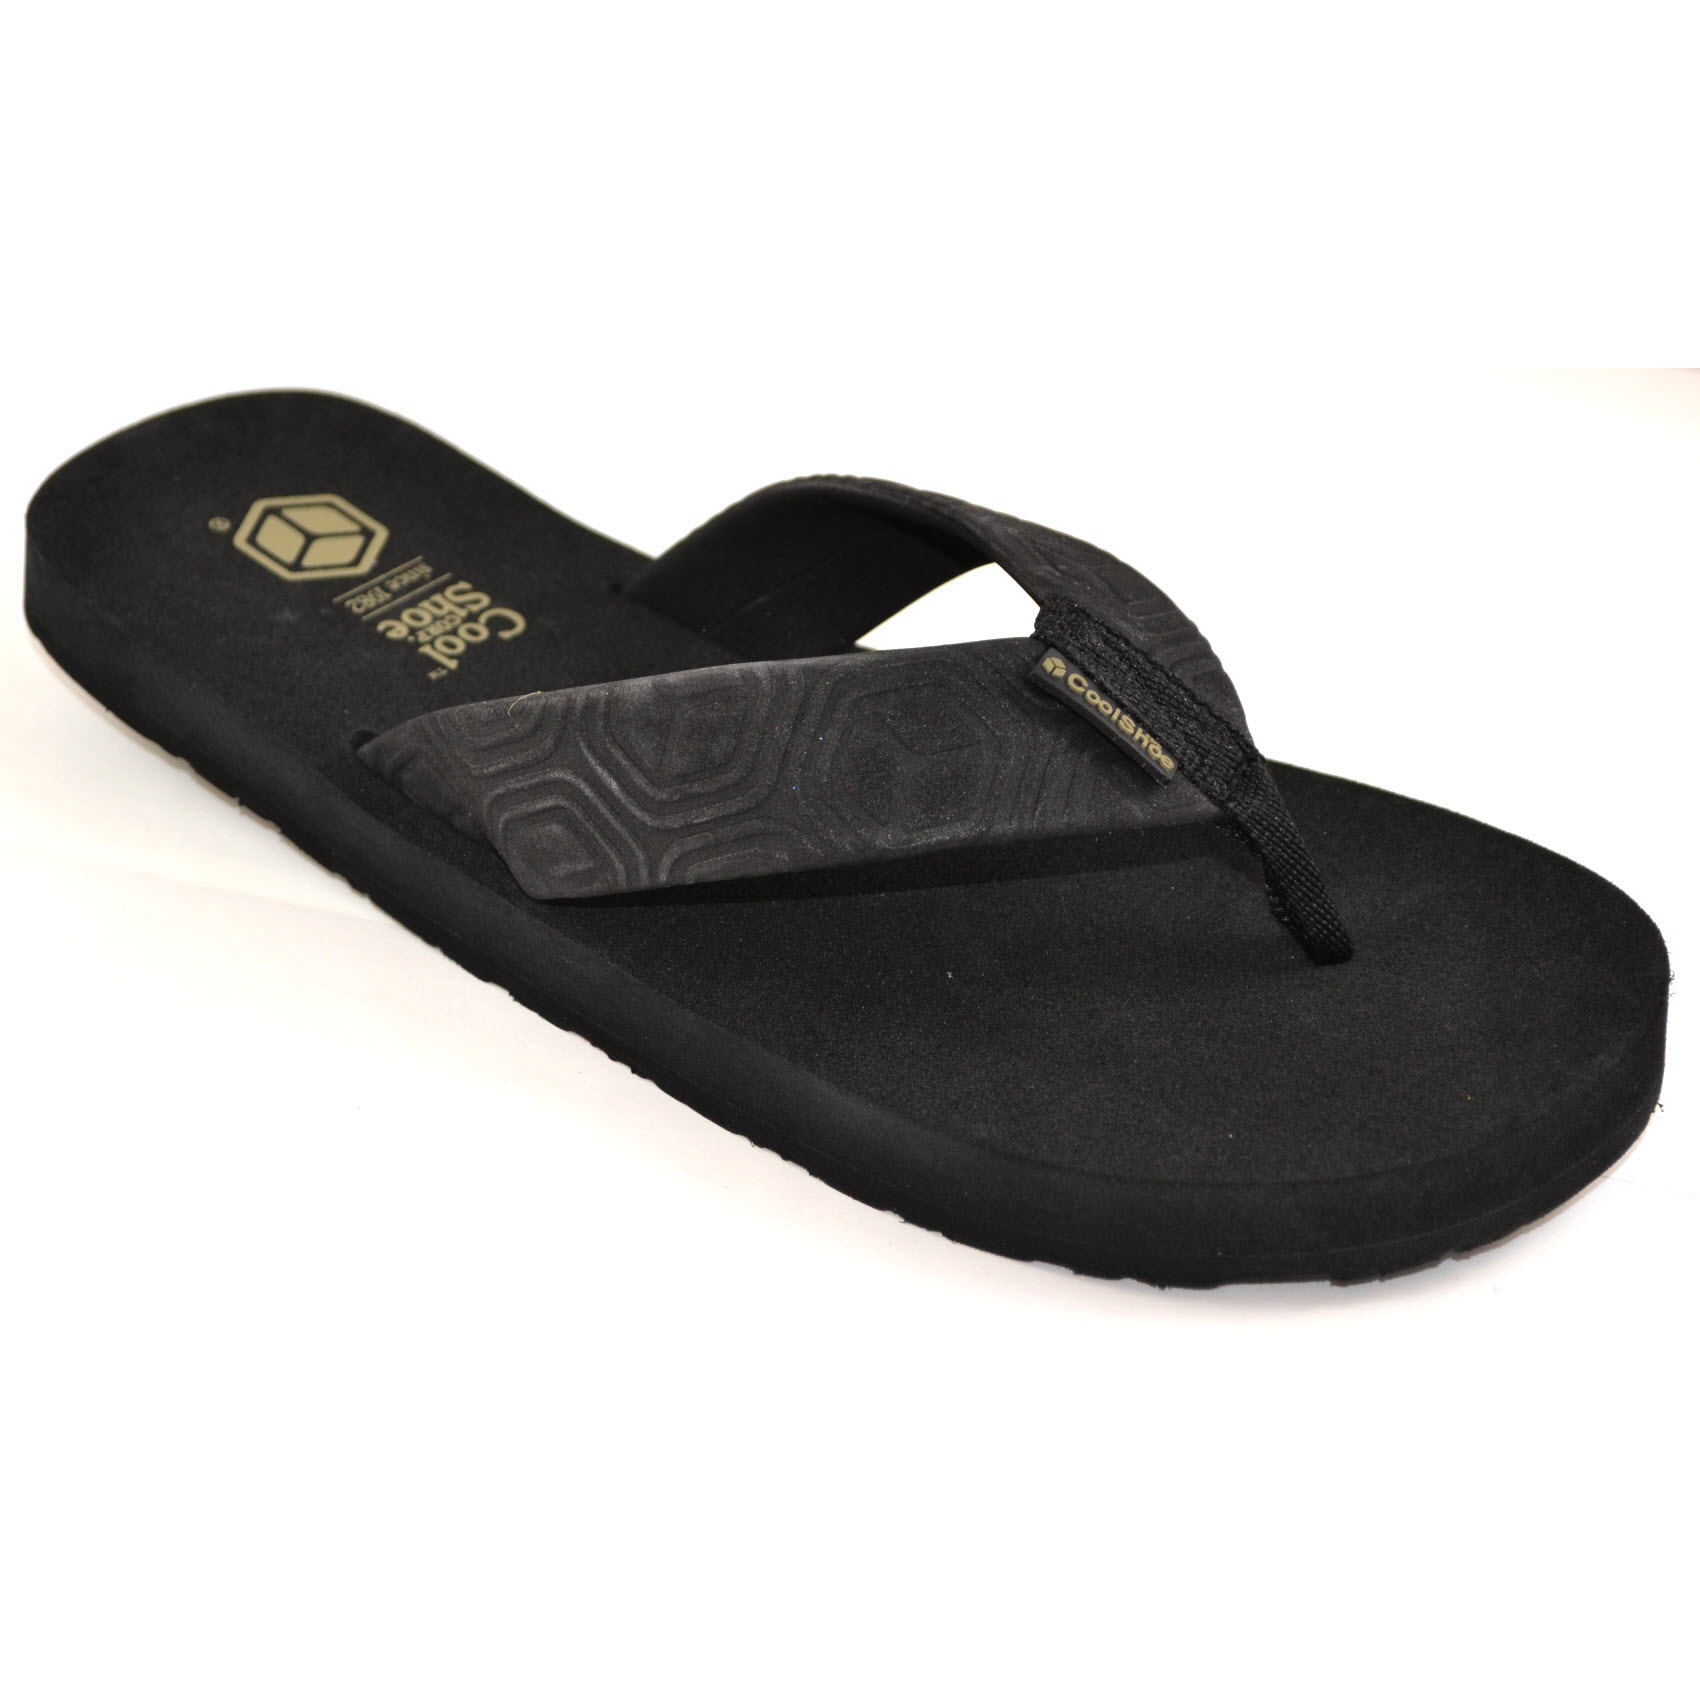 cool shoe madisson mens eva flip flops sandals ebay. Black Bedroom Furniture Sets. Home Design Ideas